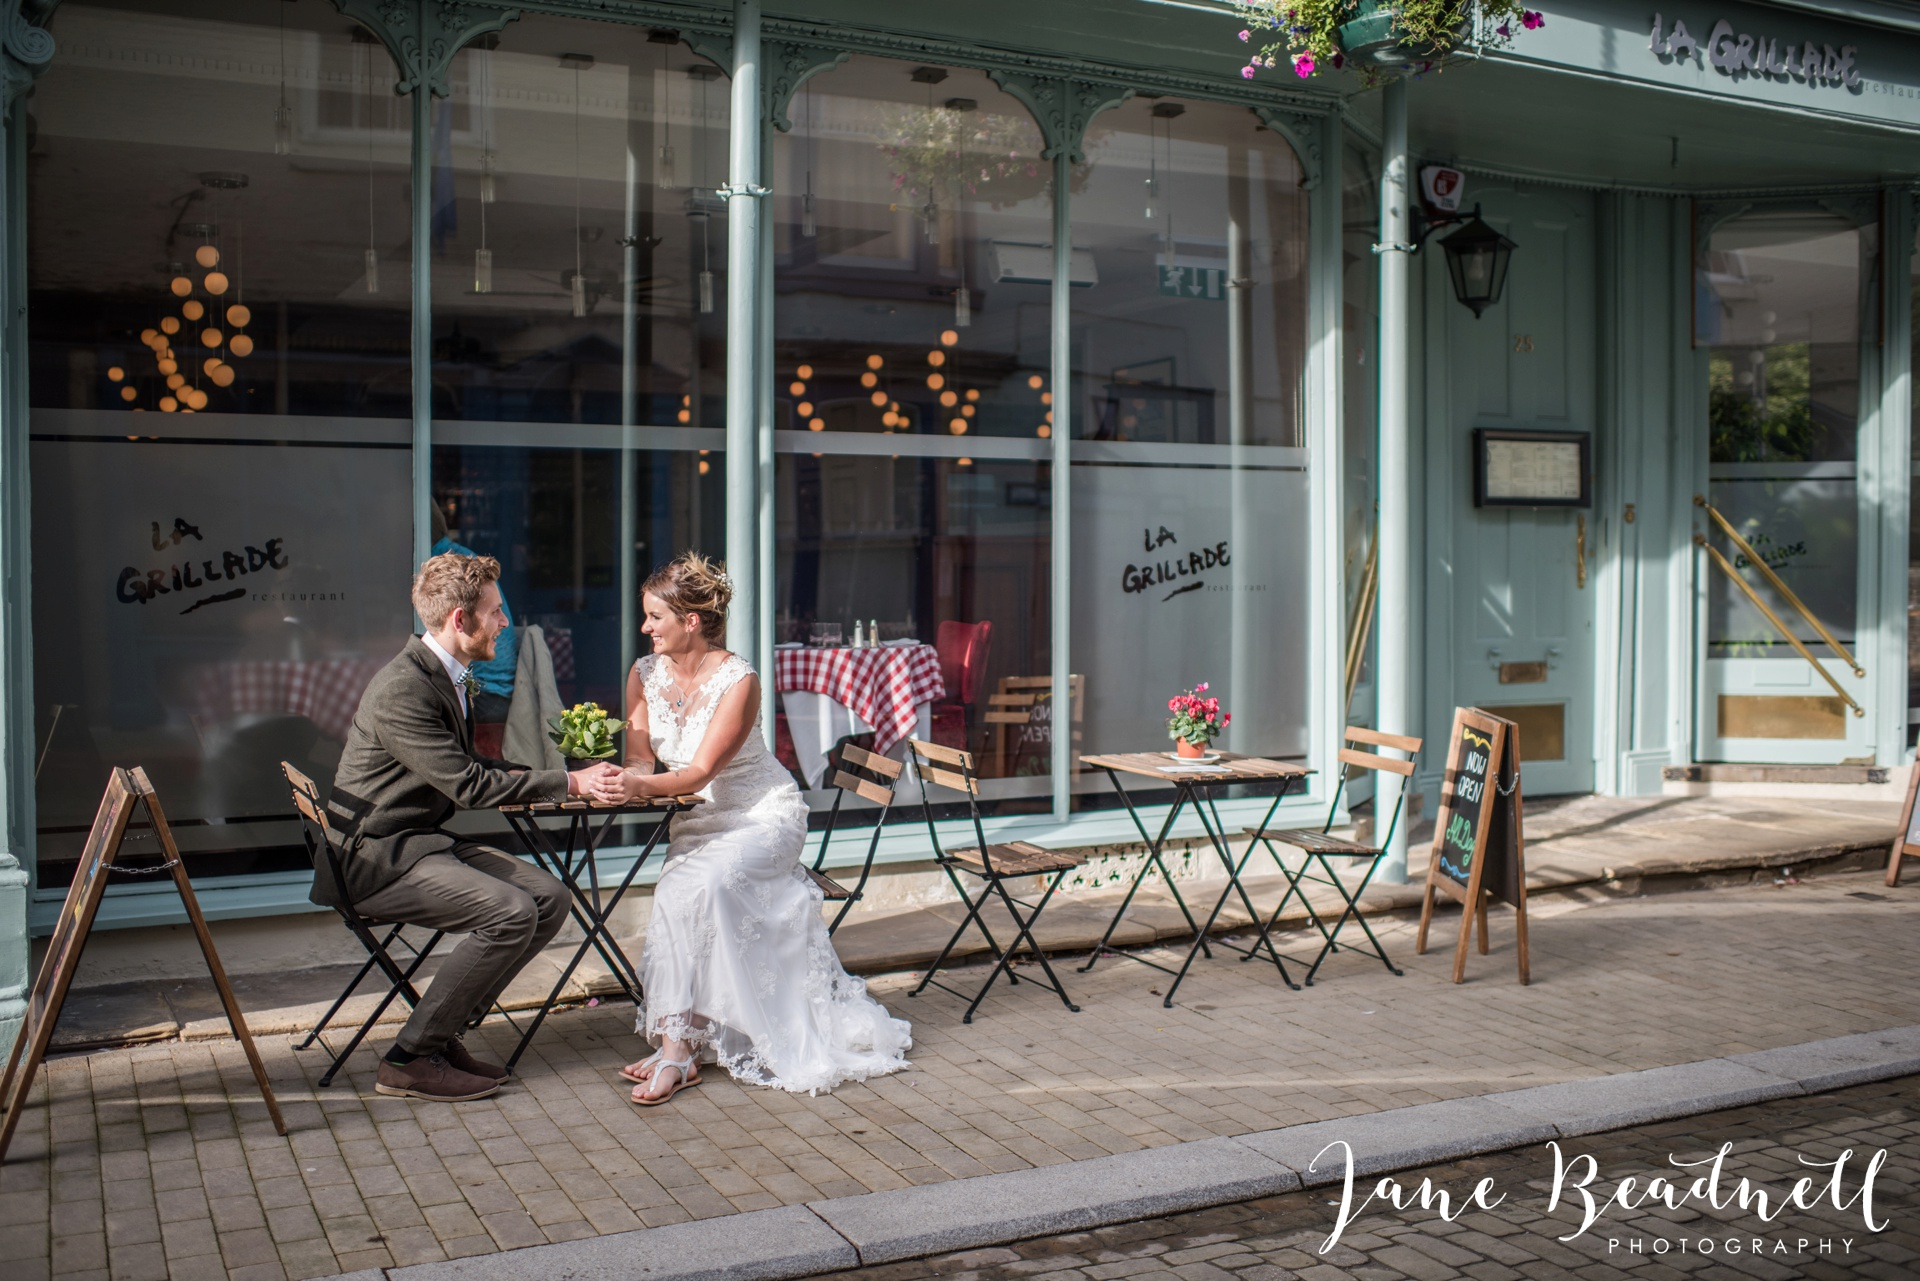 Jane Beadnell fine art wedding photographer The Old Deanery Ripon_0071